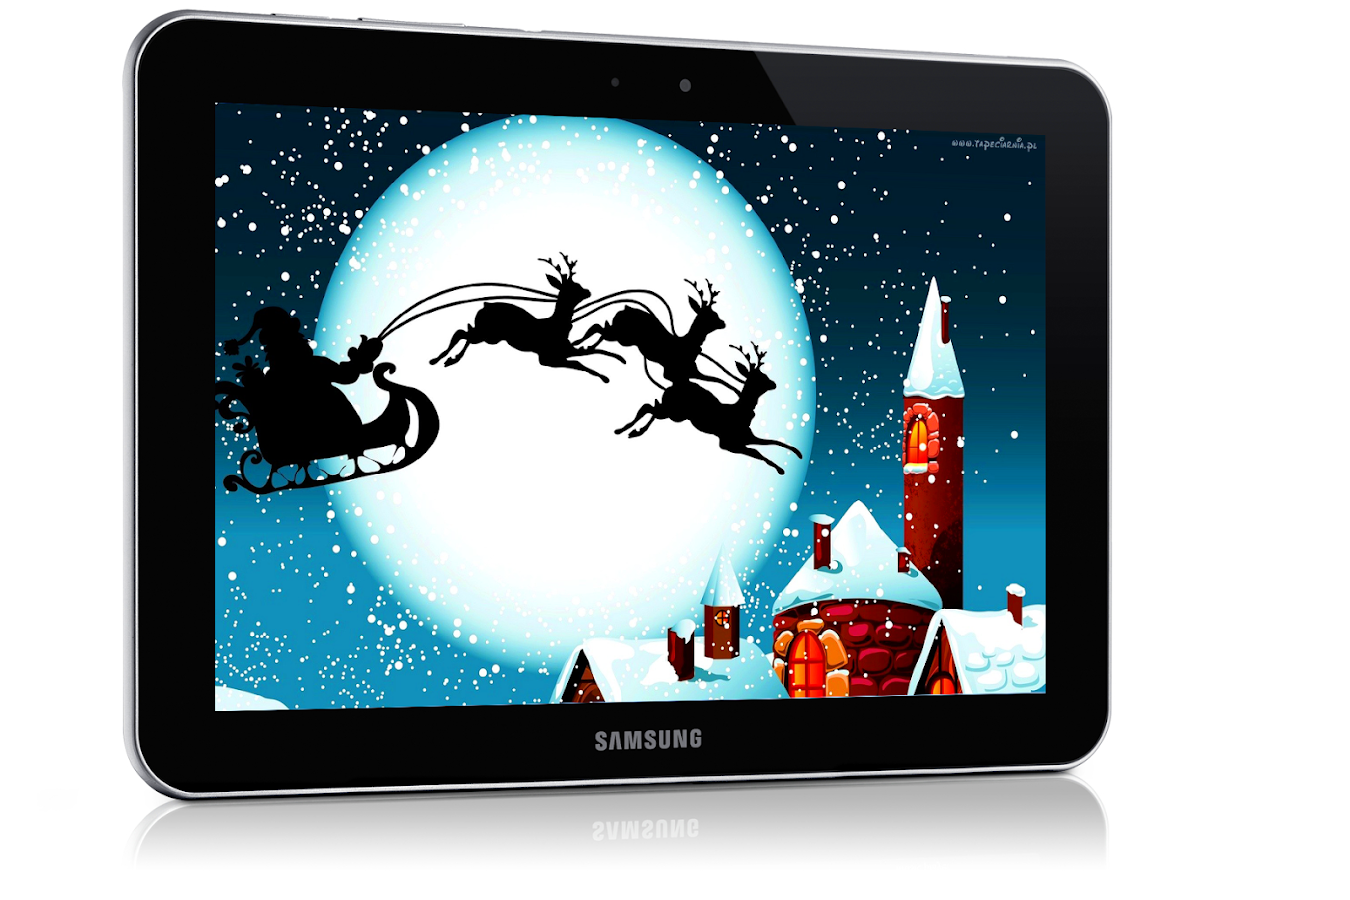 santa claus live wallpaper,tablet computer,ipad,technology,electronic device,screen